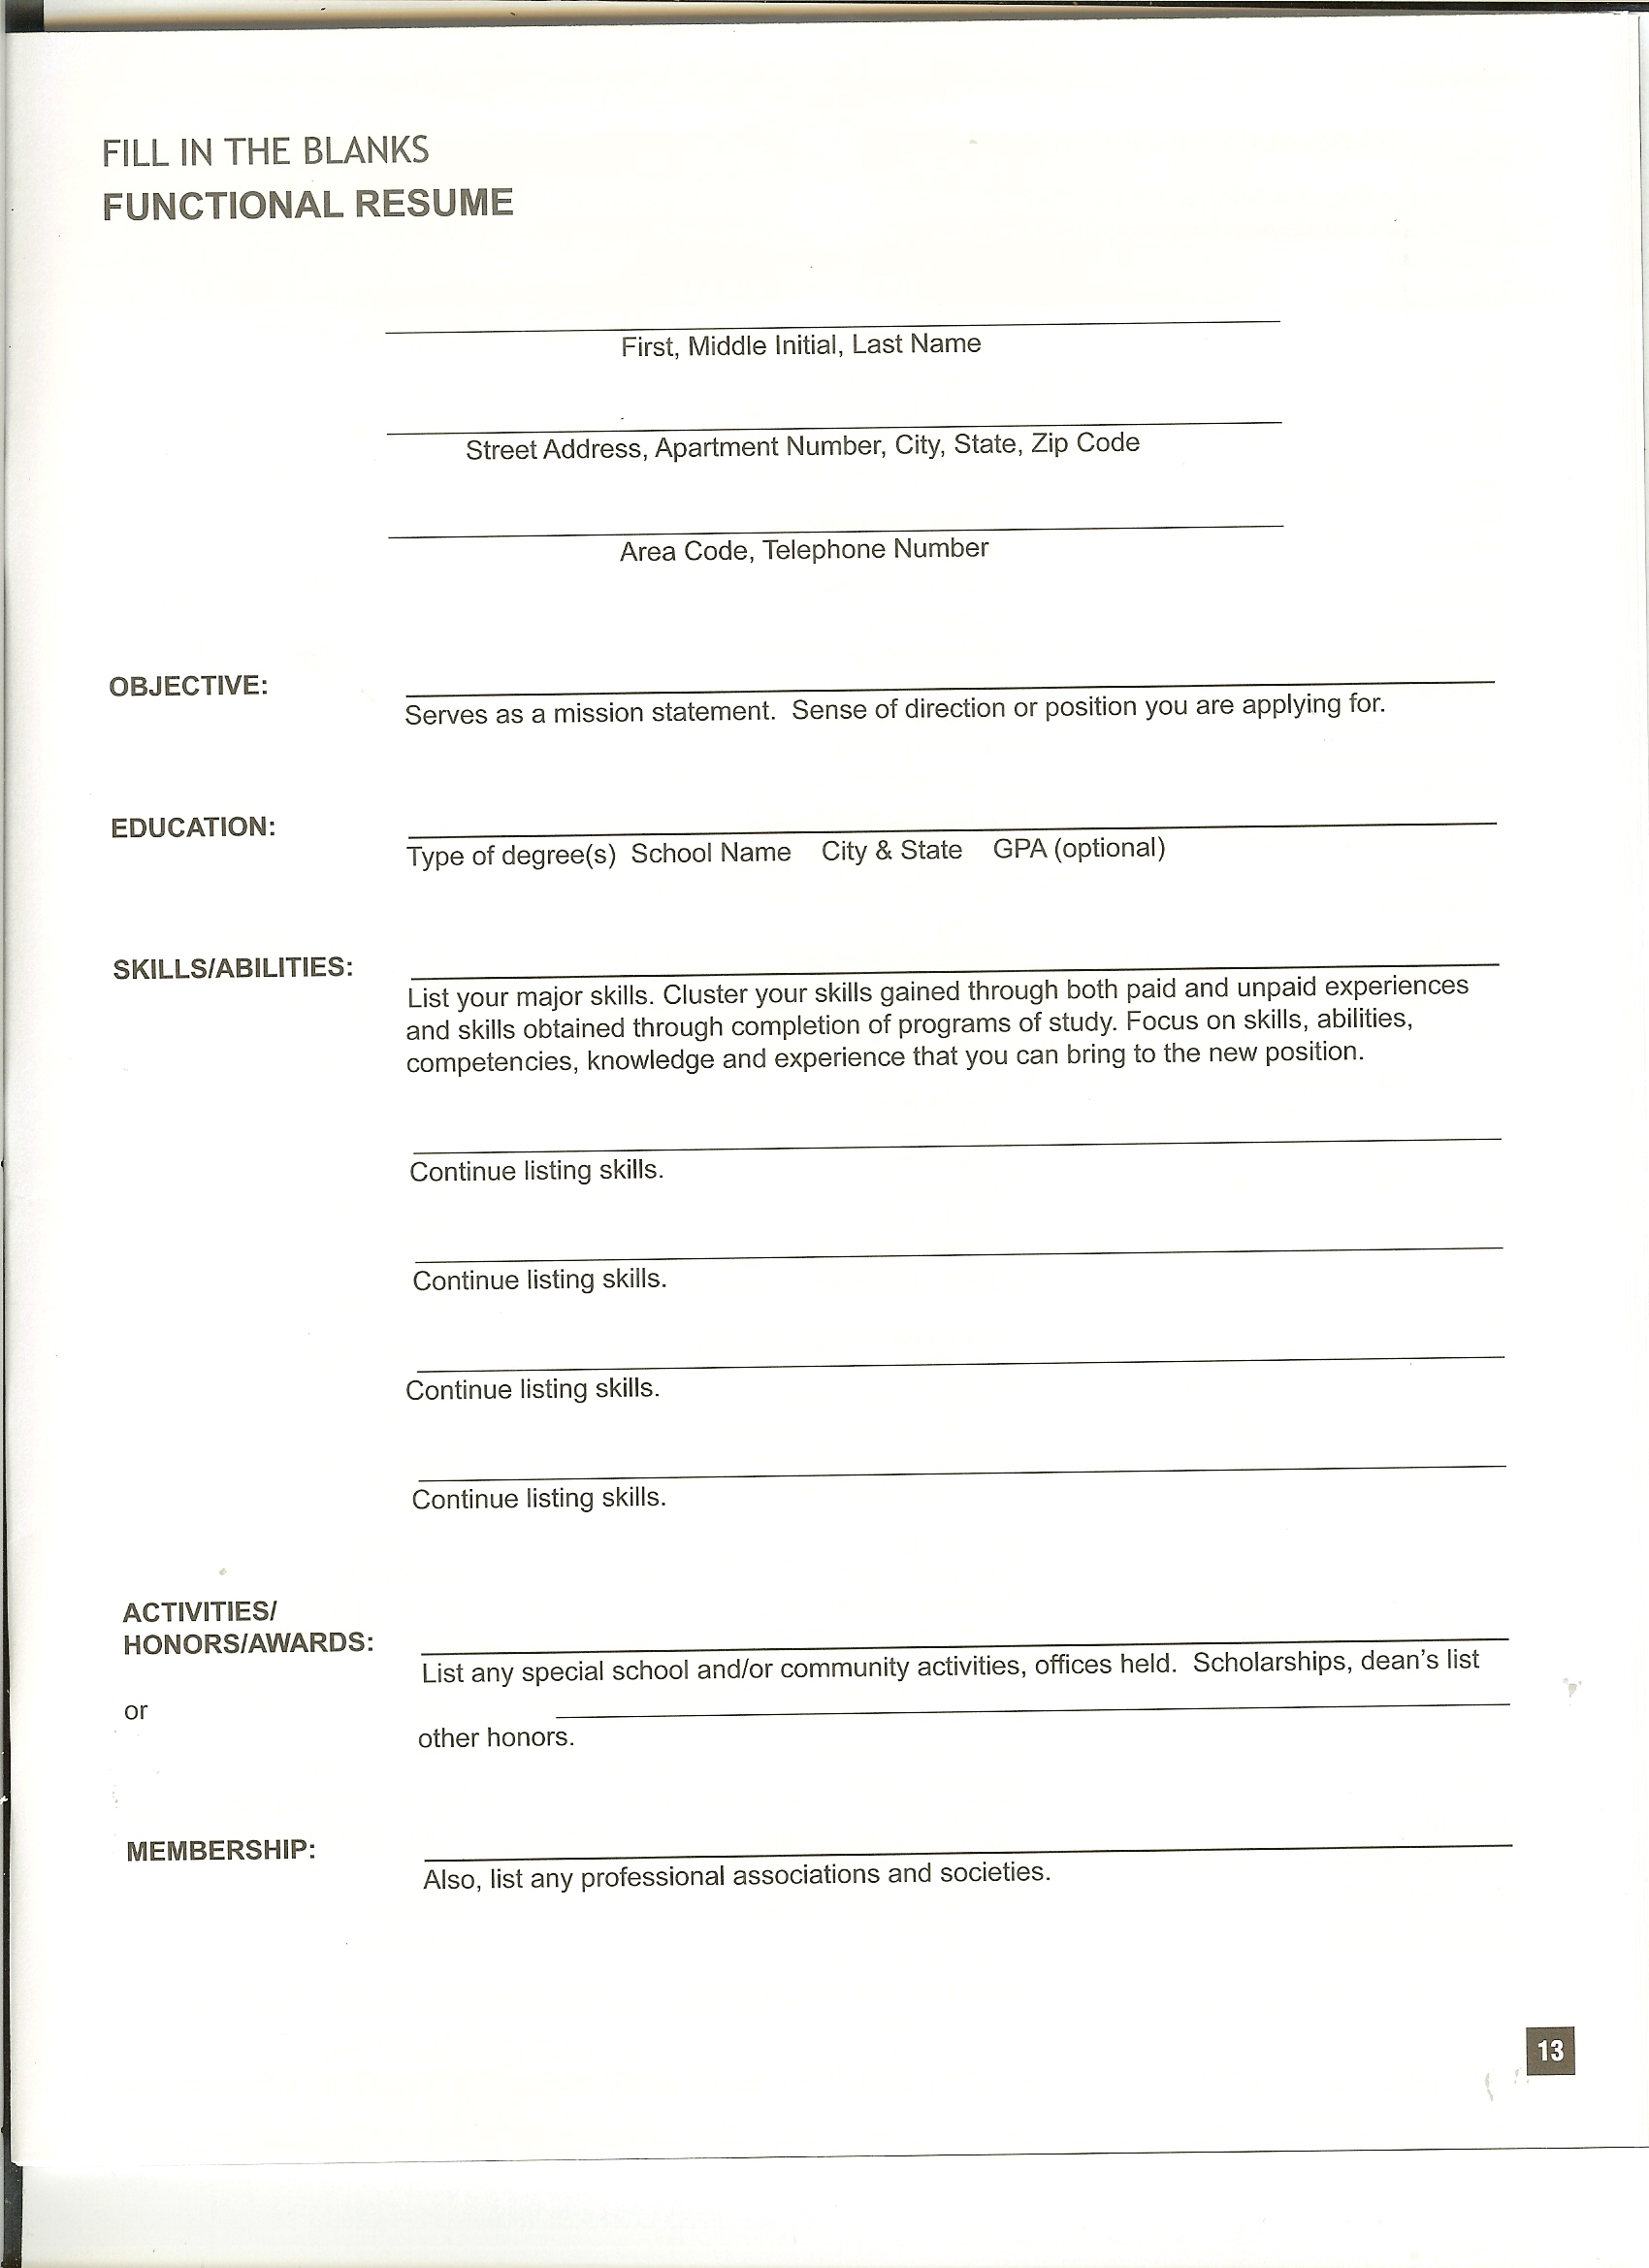 resume application form simple sample resumes forms free